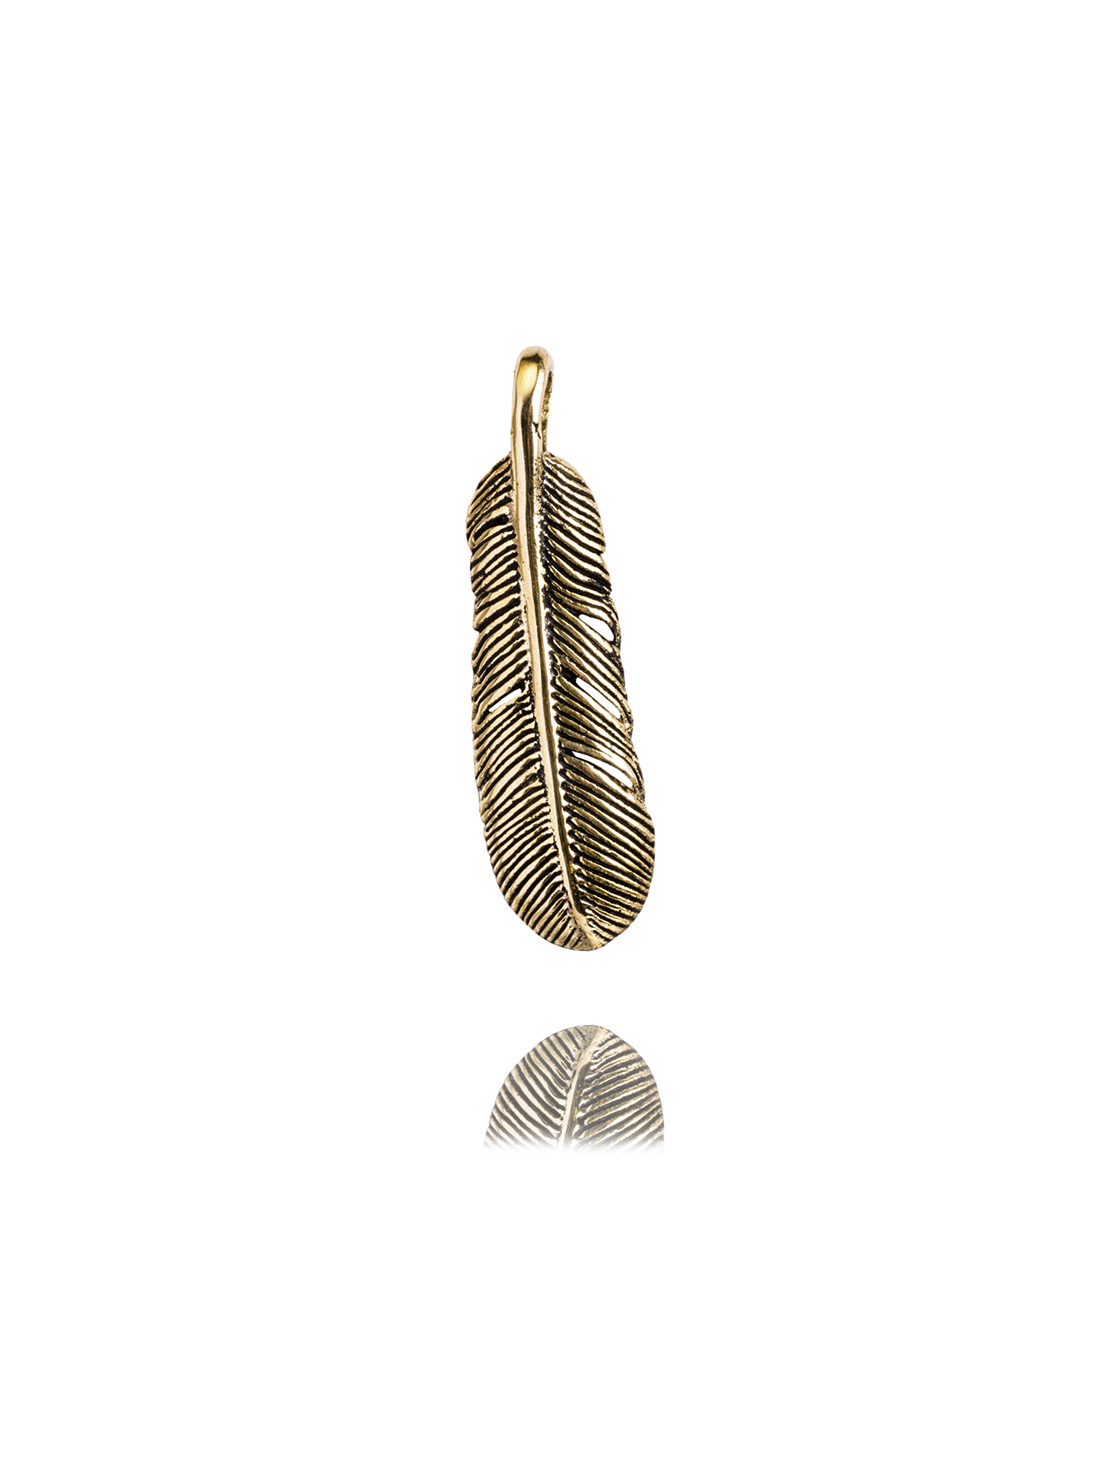 Small Brass Feather Charm